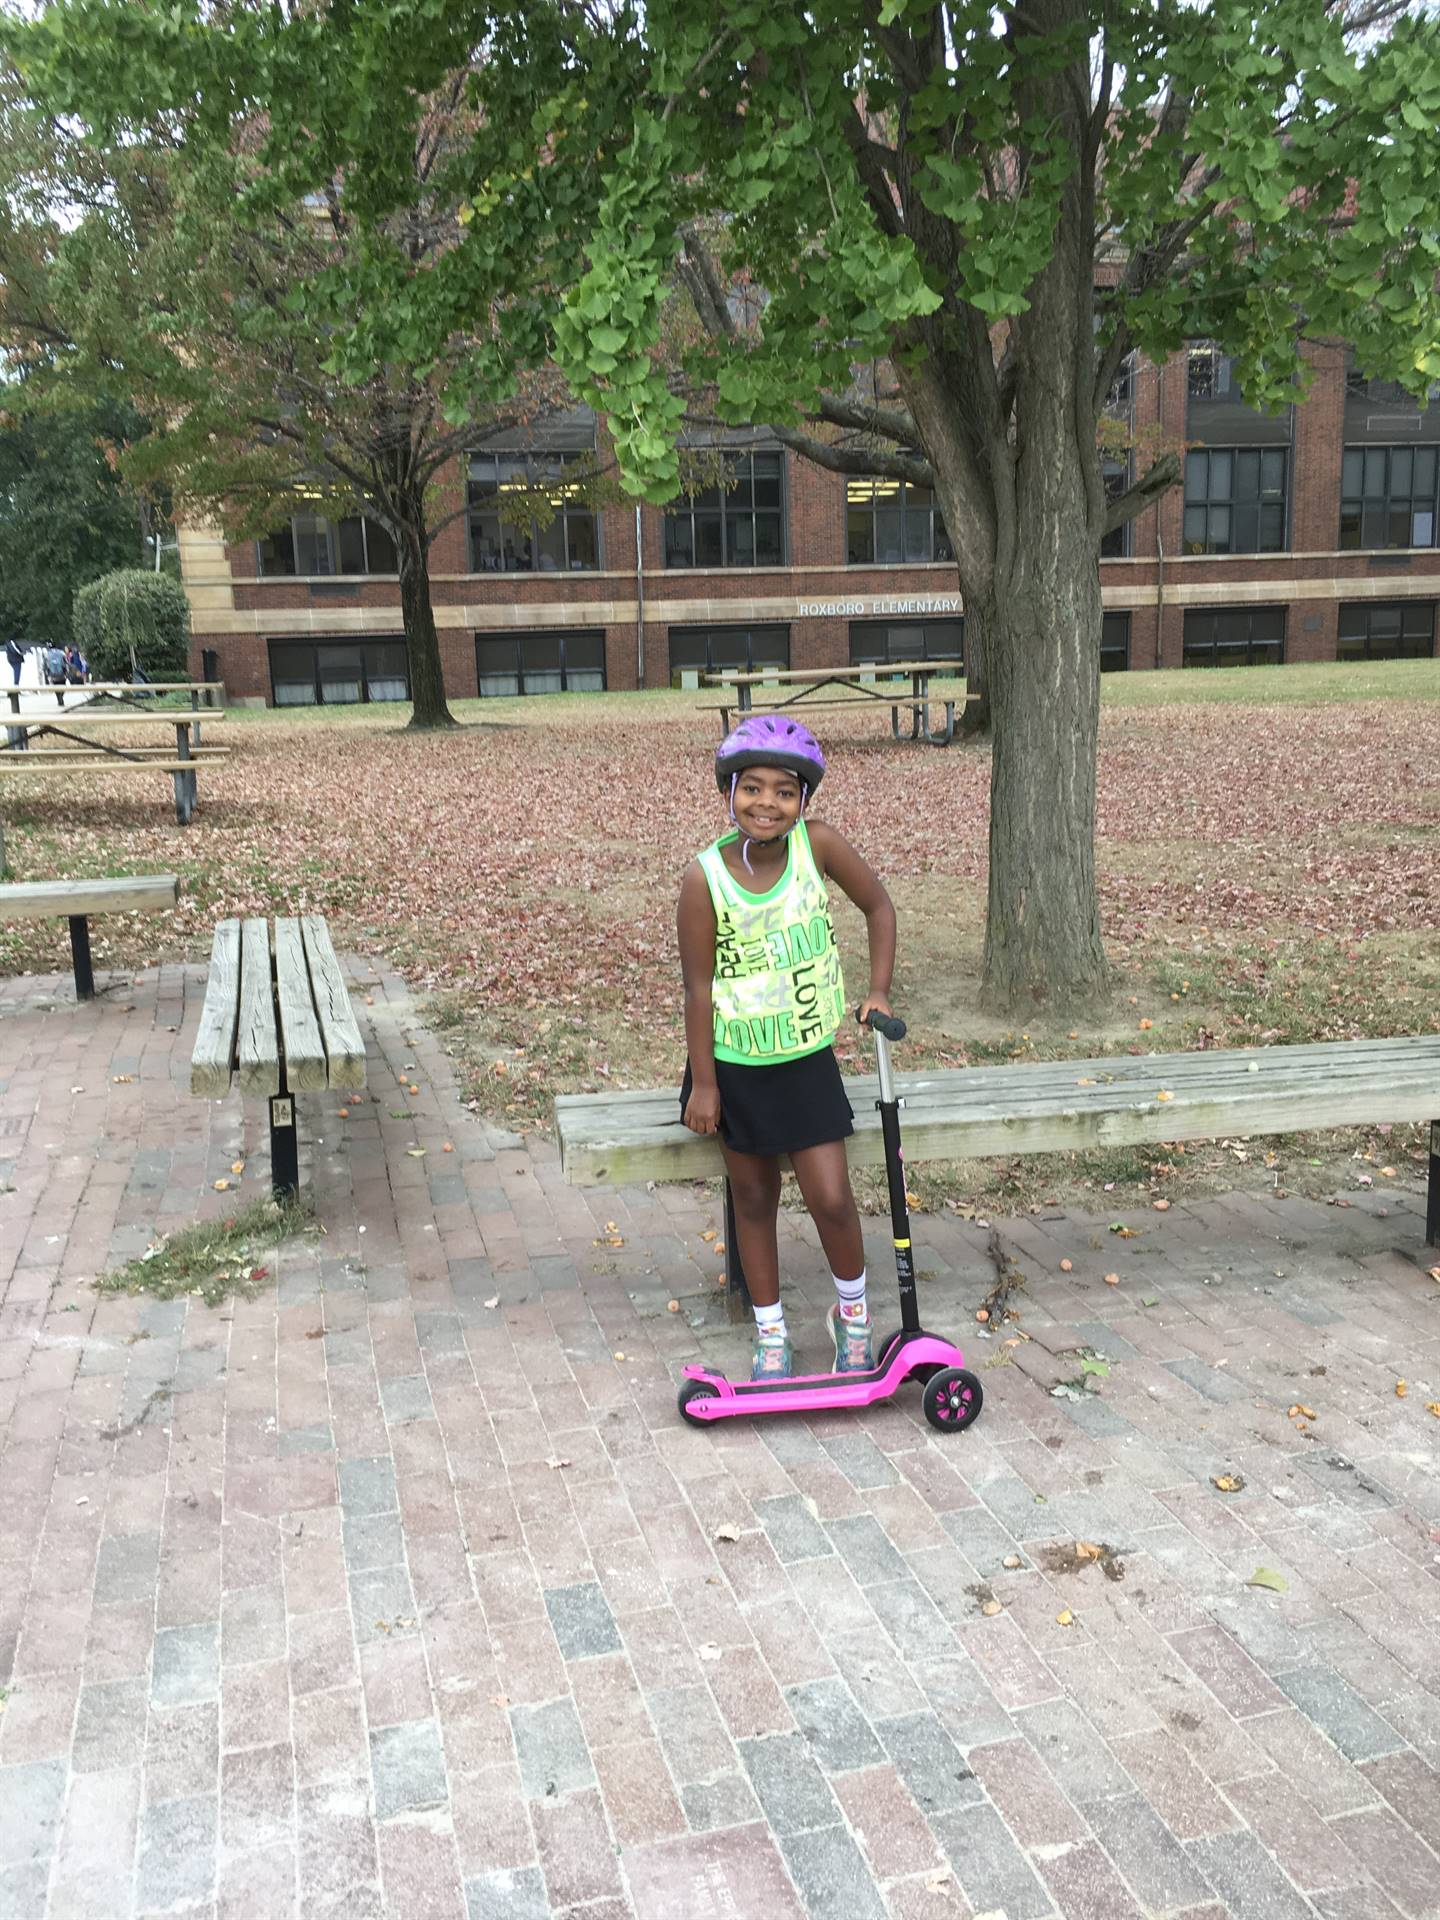 Erika and her scooter